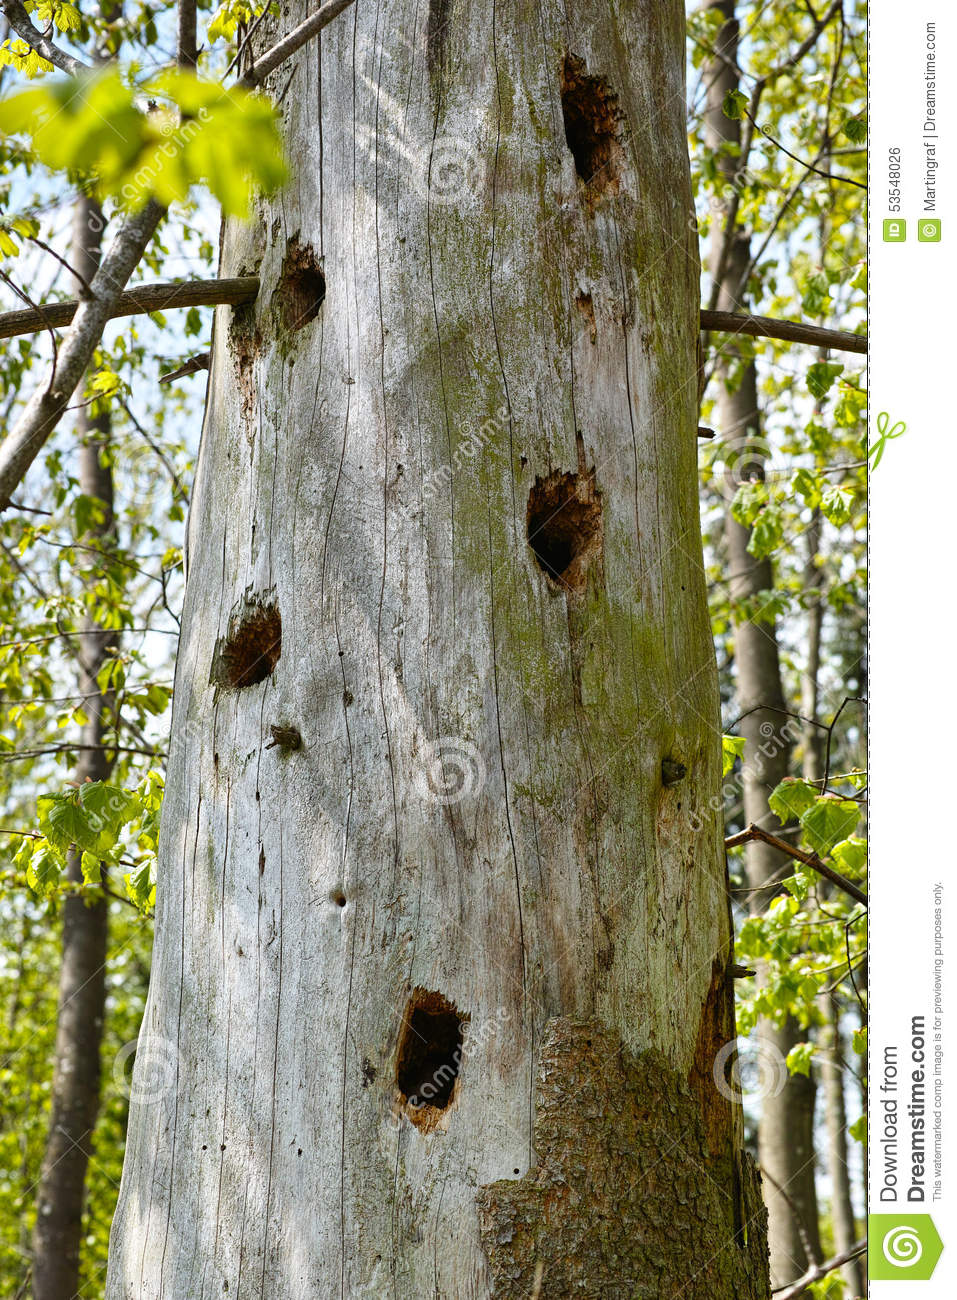 Woodpecker Holes In Tree Trunk Stock Photo.